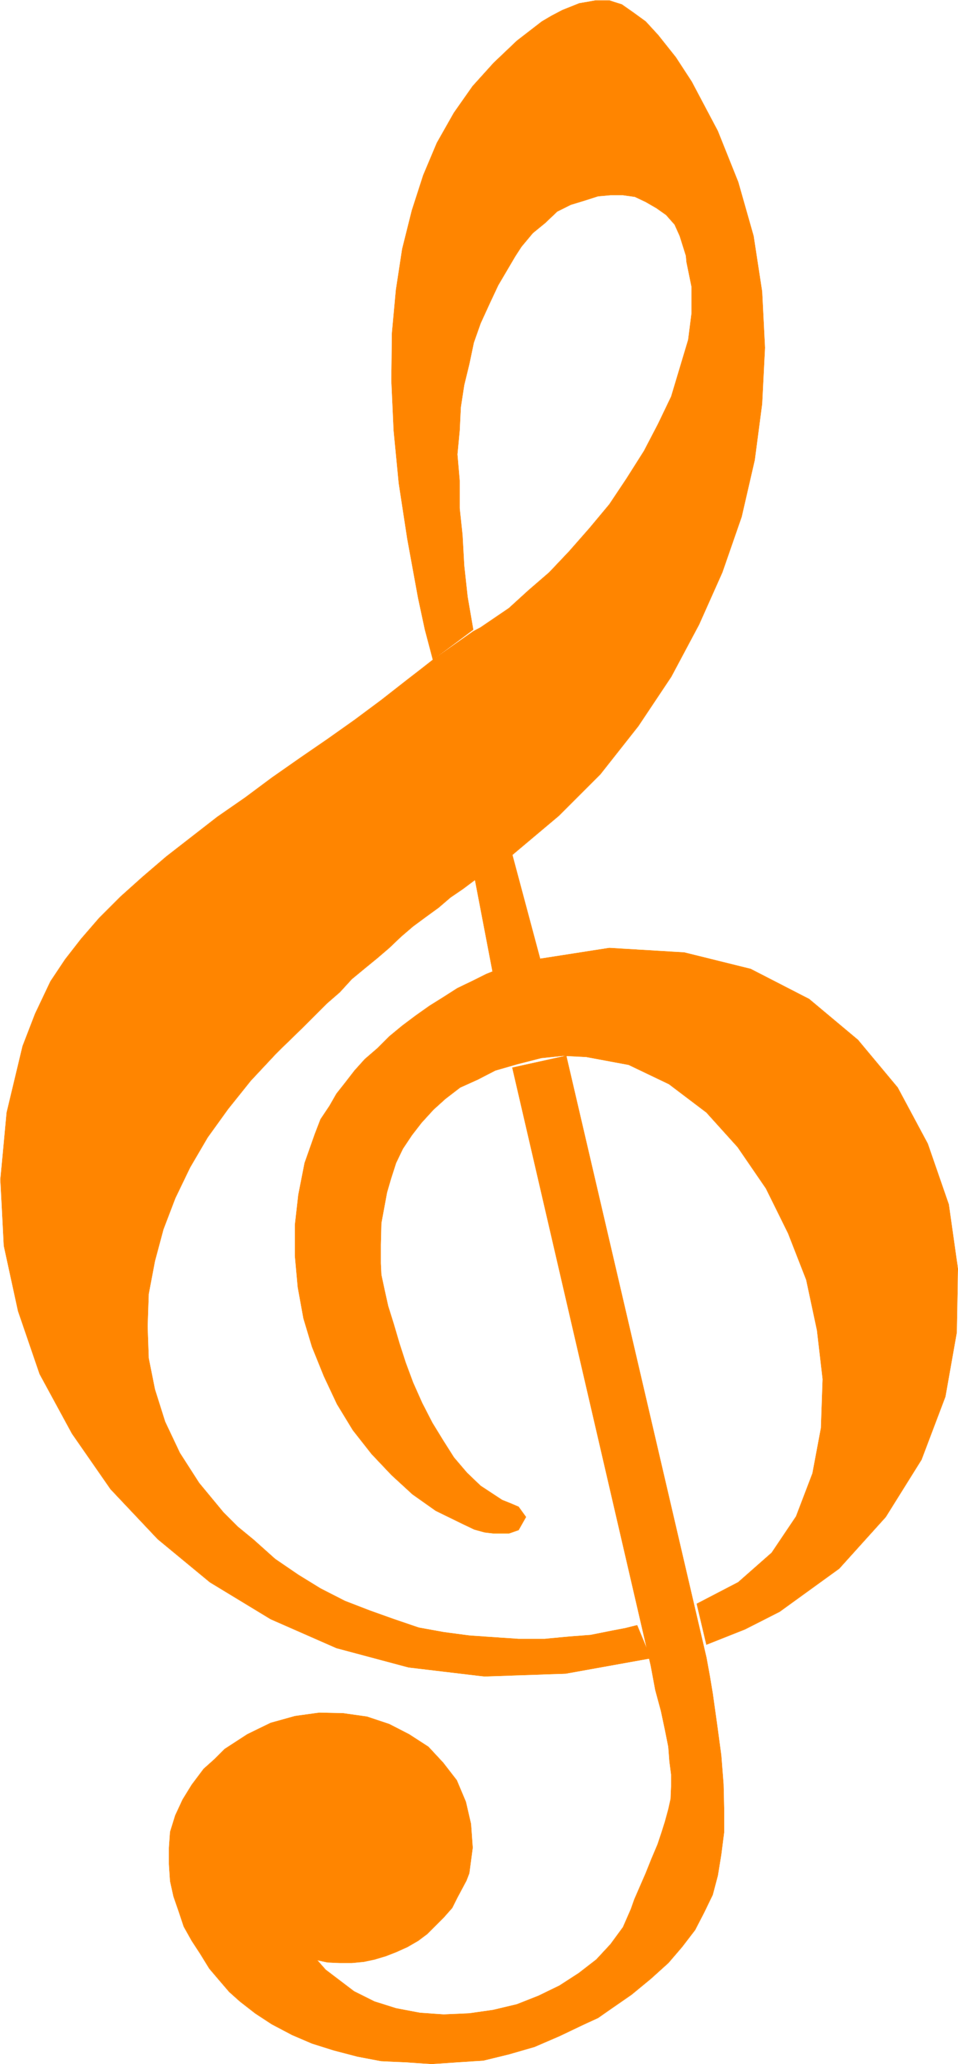 Music notes going around the sun clipart graphic free stock Free Stock Photo: Illustration of an orange treble clef music symbol ... graphic free stock